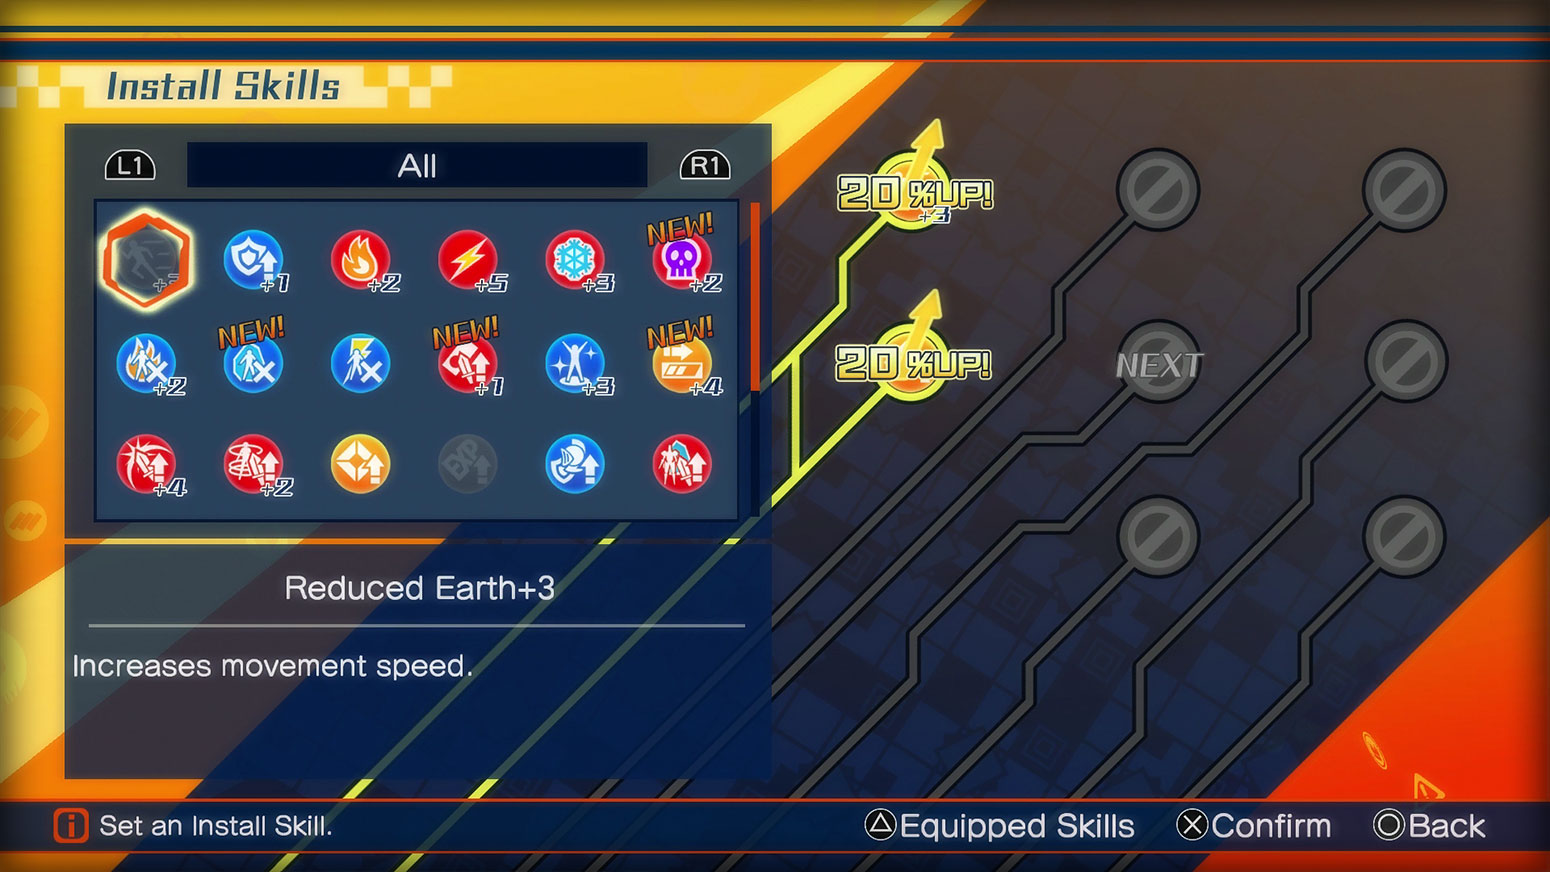 Fate/EXTELLA: The Umbral Star -  Install Skills Screenshot 1